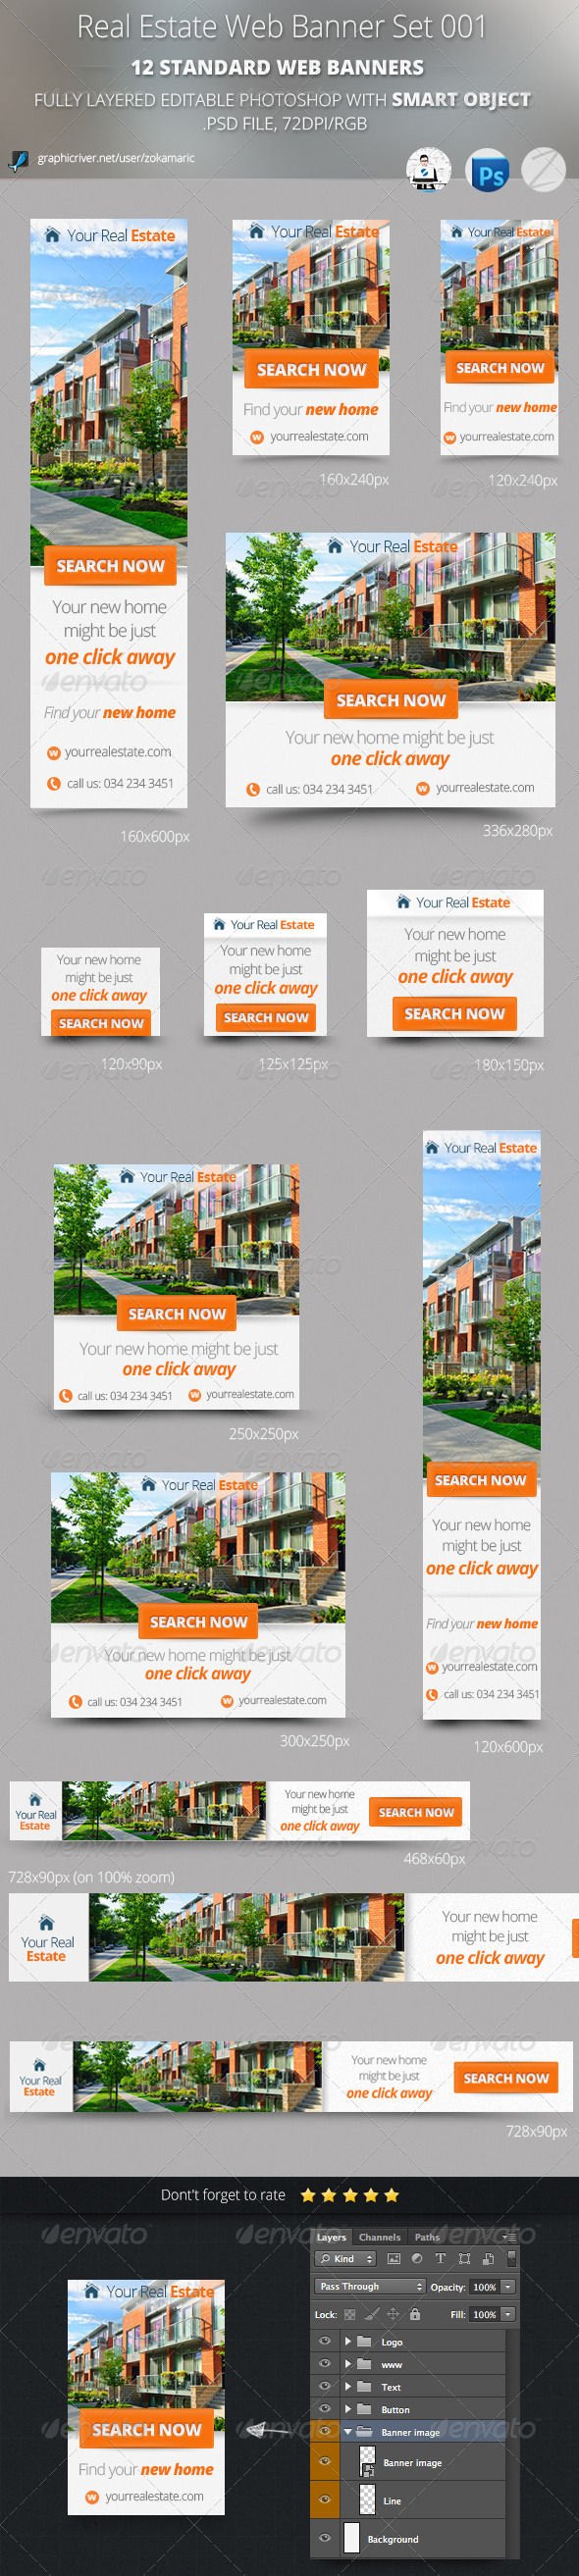 Real Estate Web Banner Set 001 - Banners & Ads Web Elements